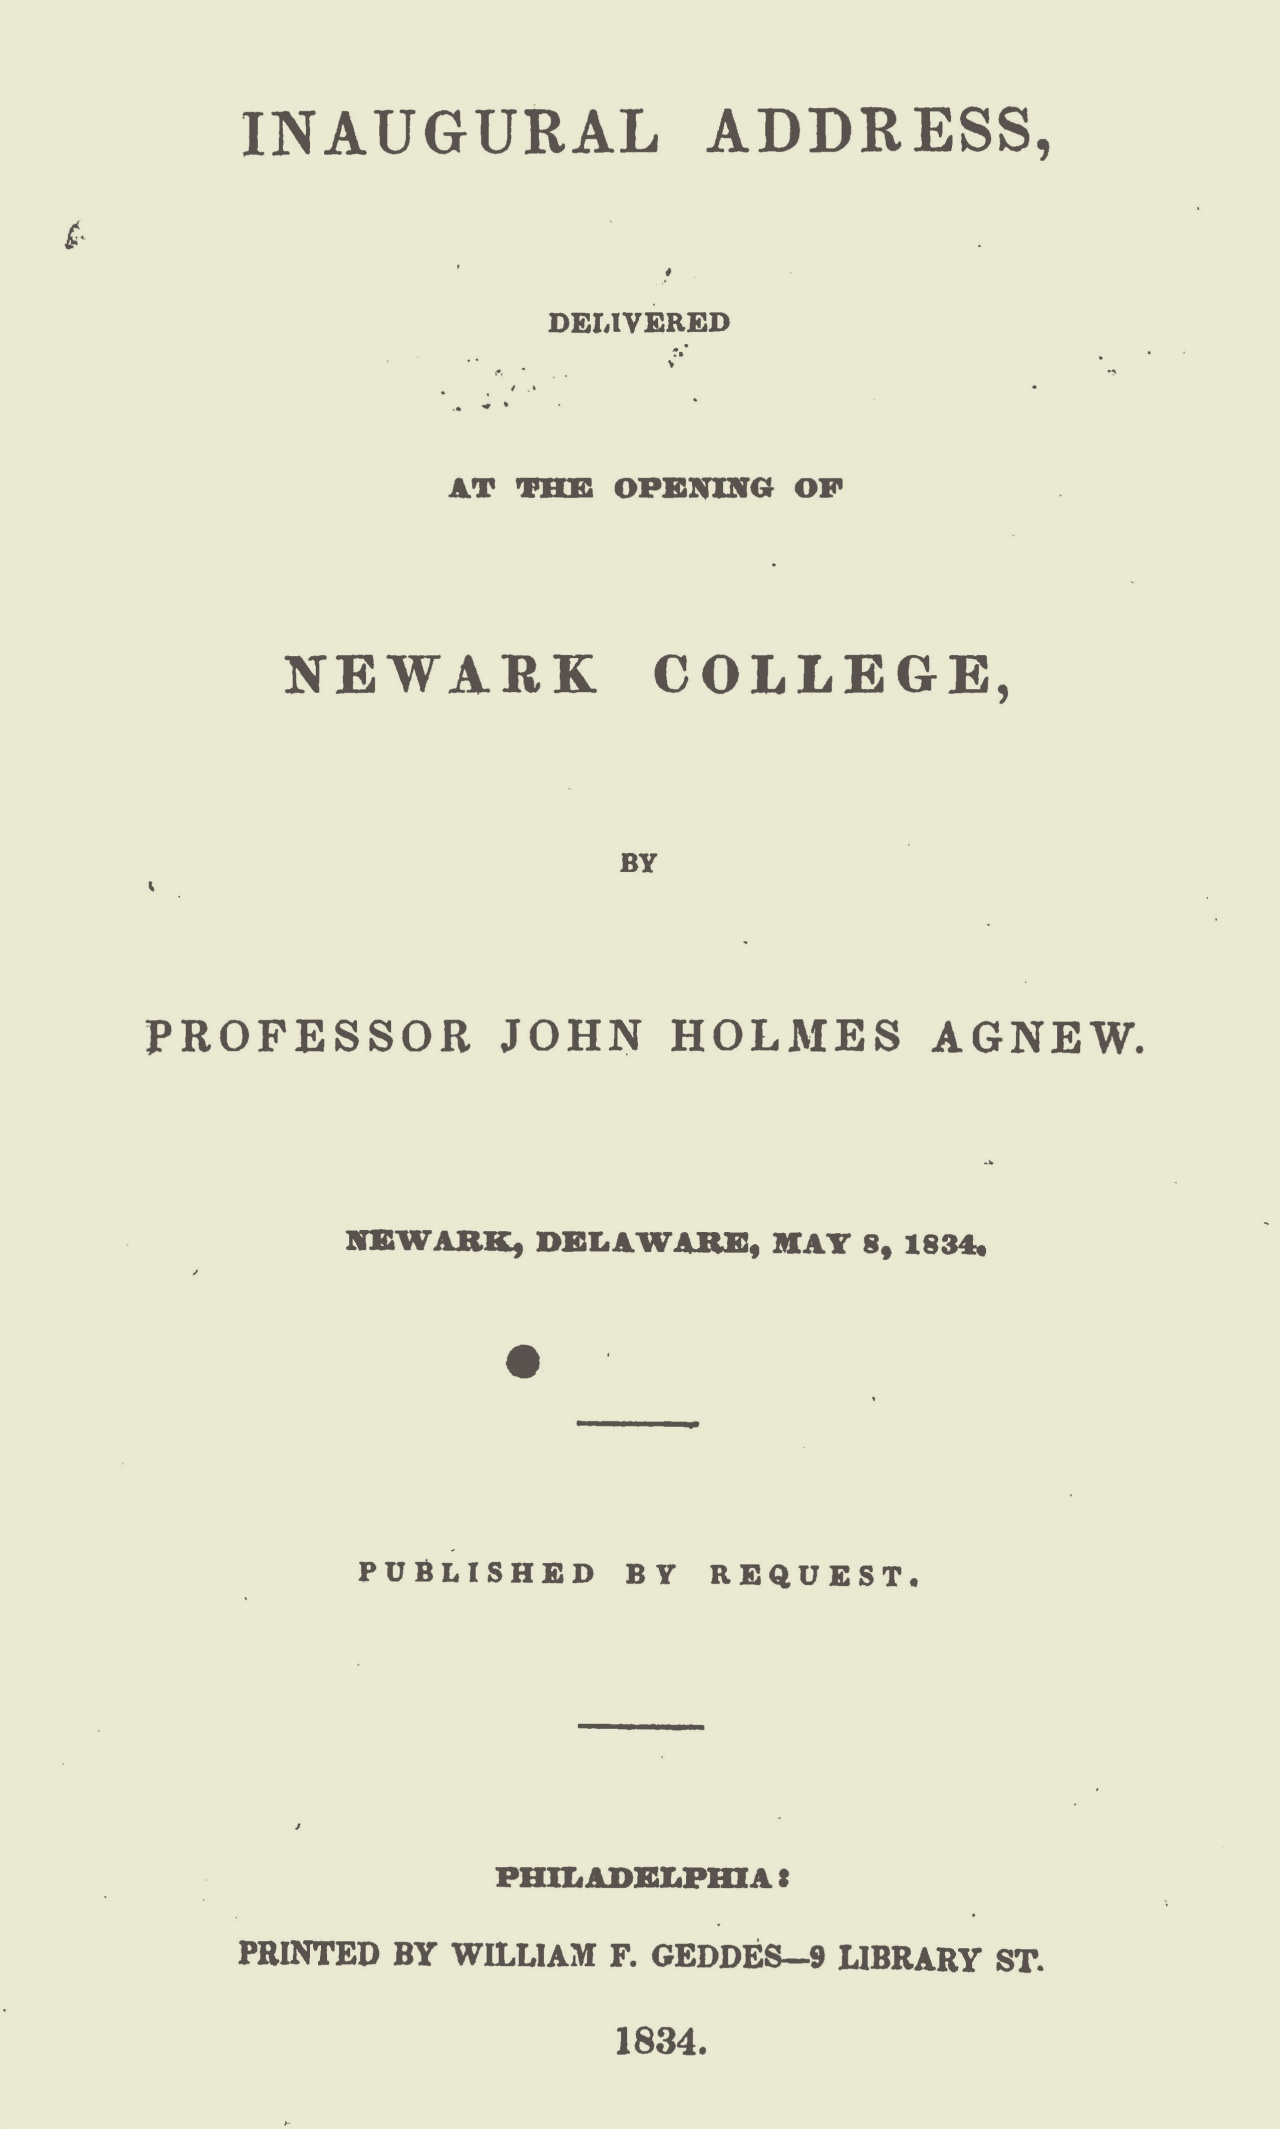 Agnew, John Holmes, Inaugural Address at Newark College Title Page.jpg